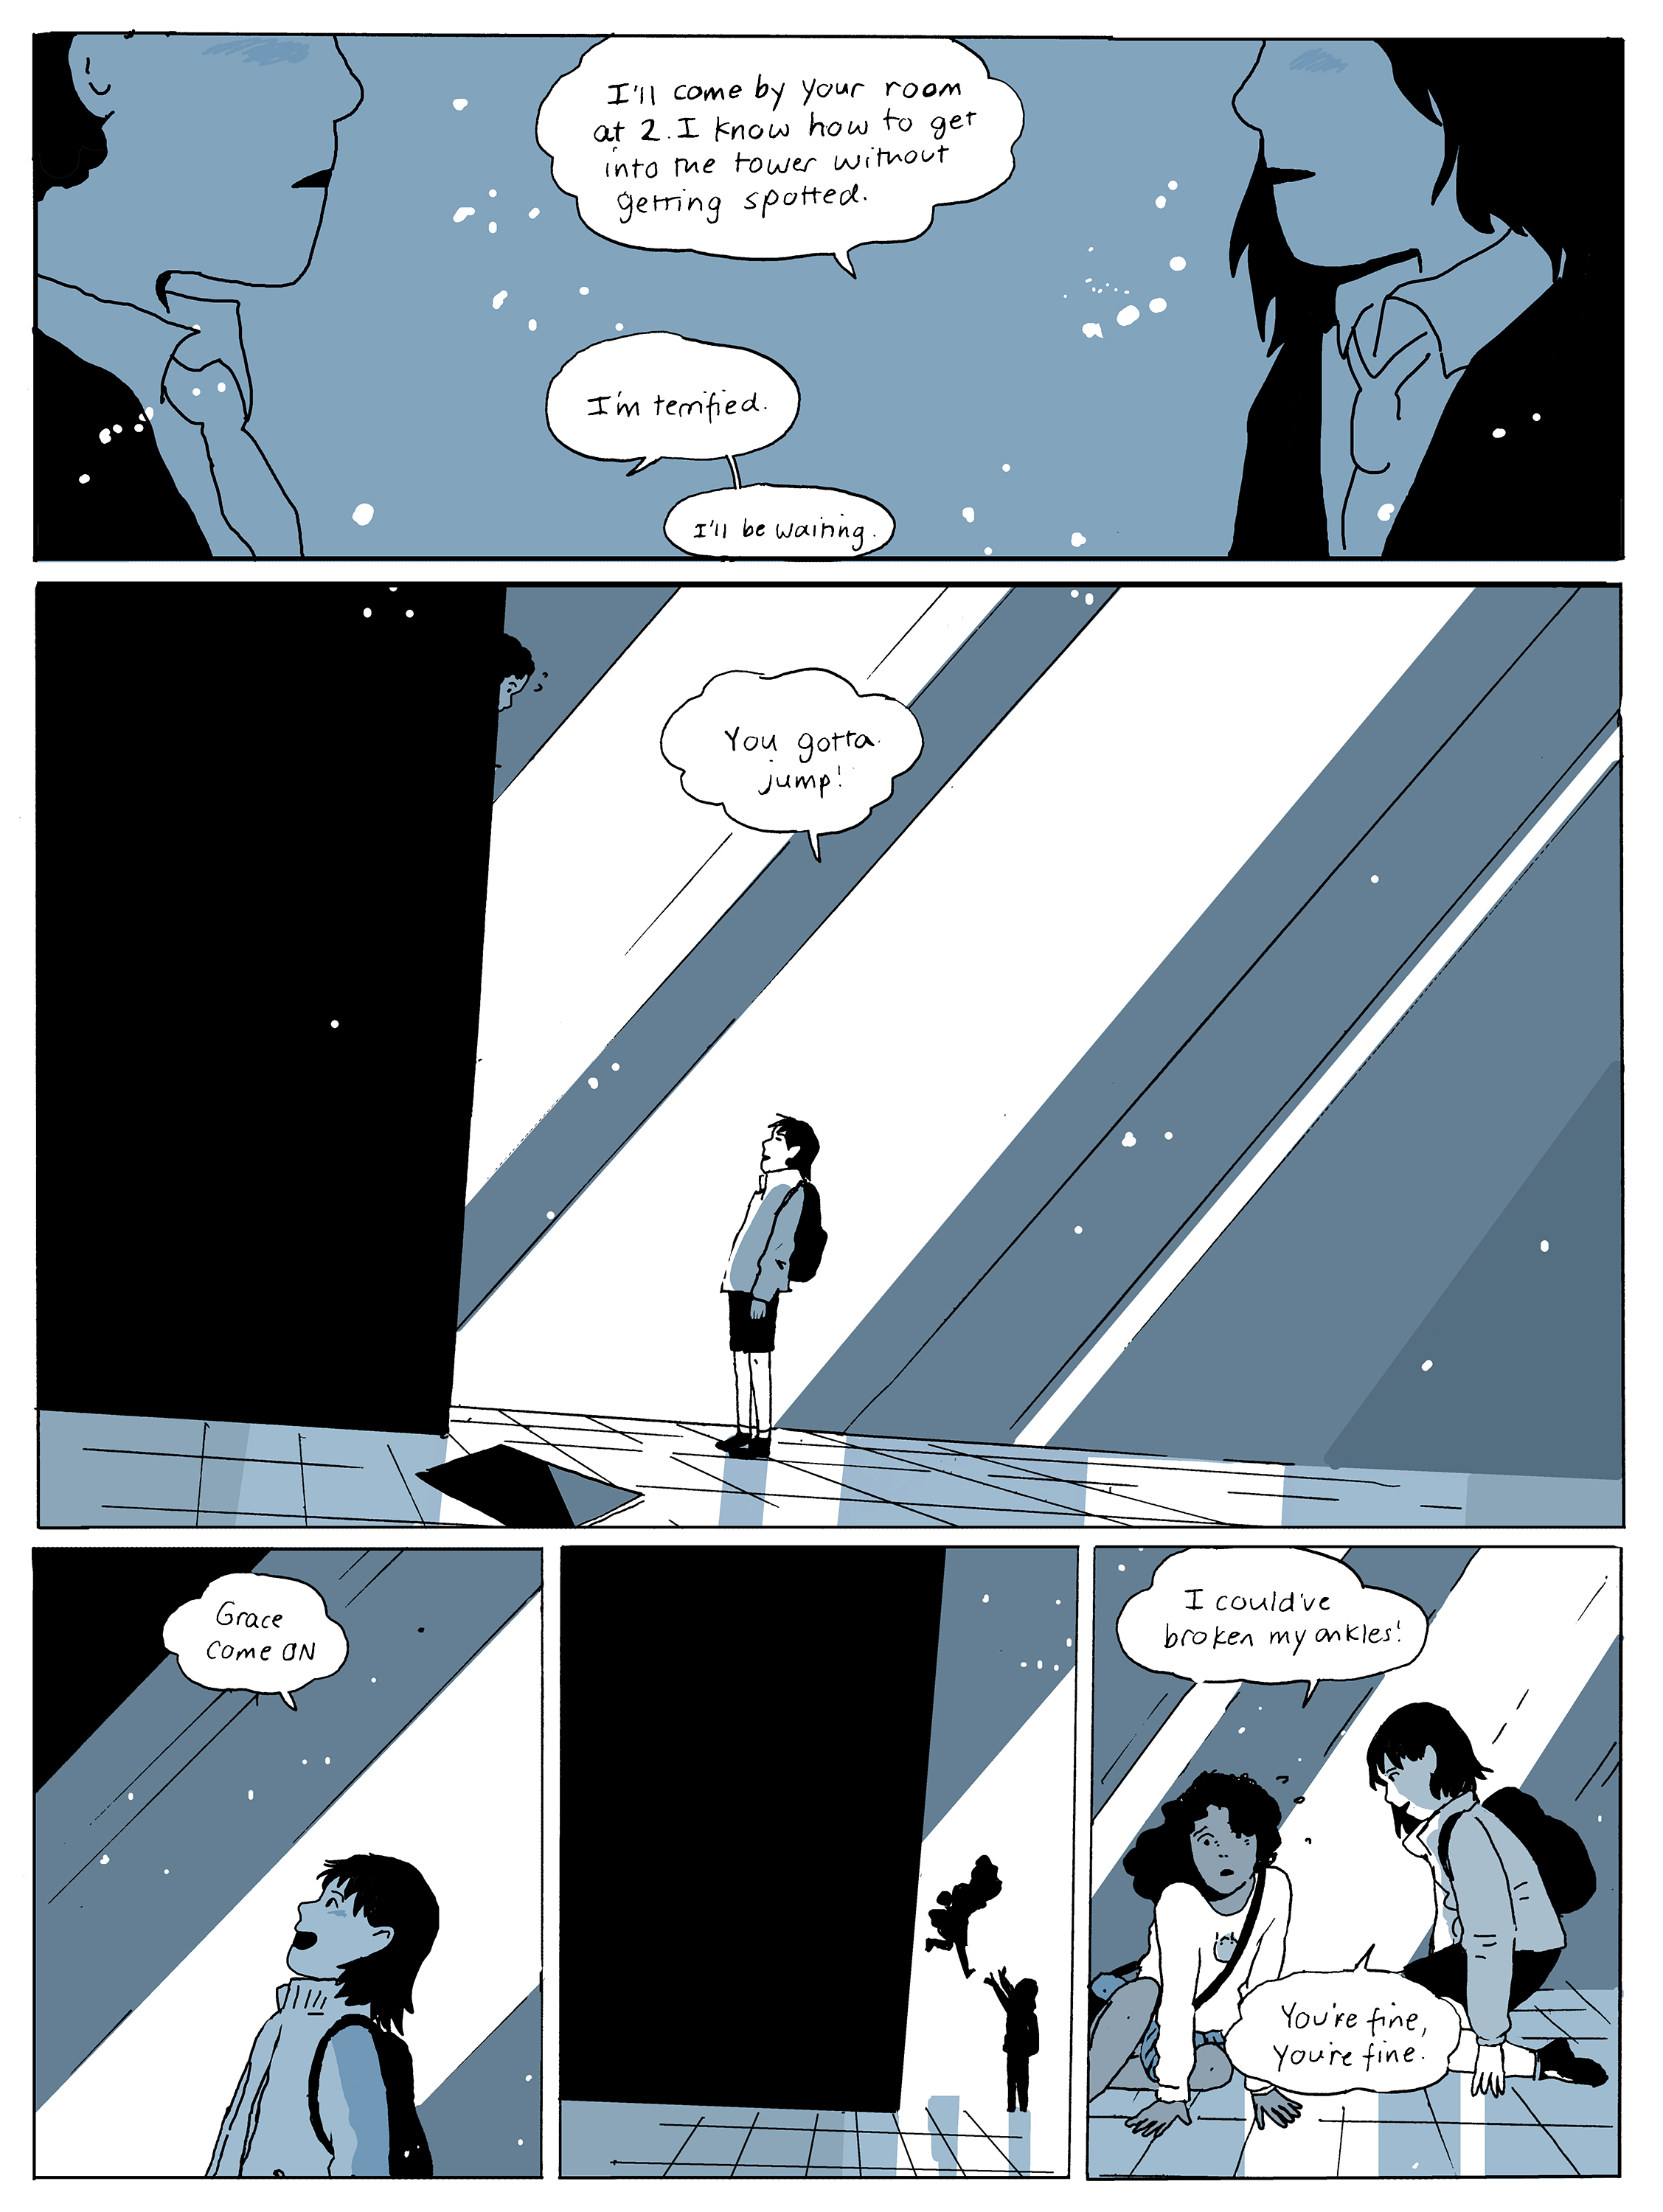 chapter04_page13.jpg